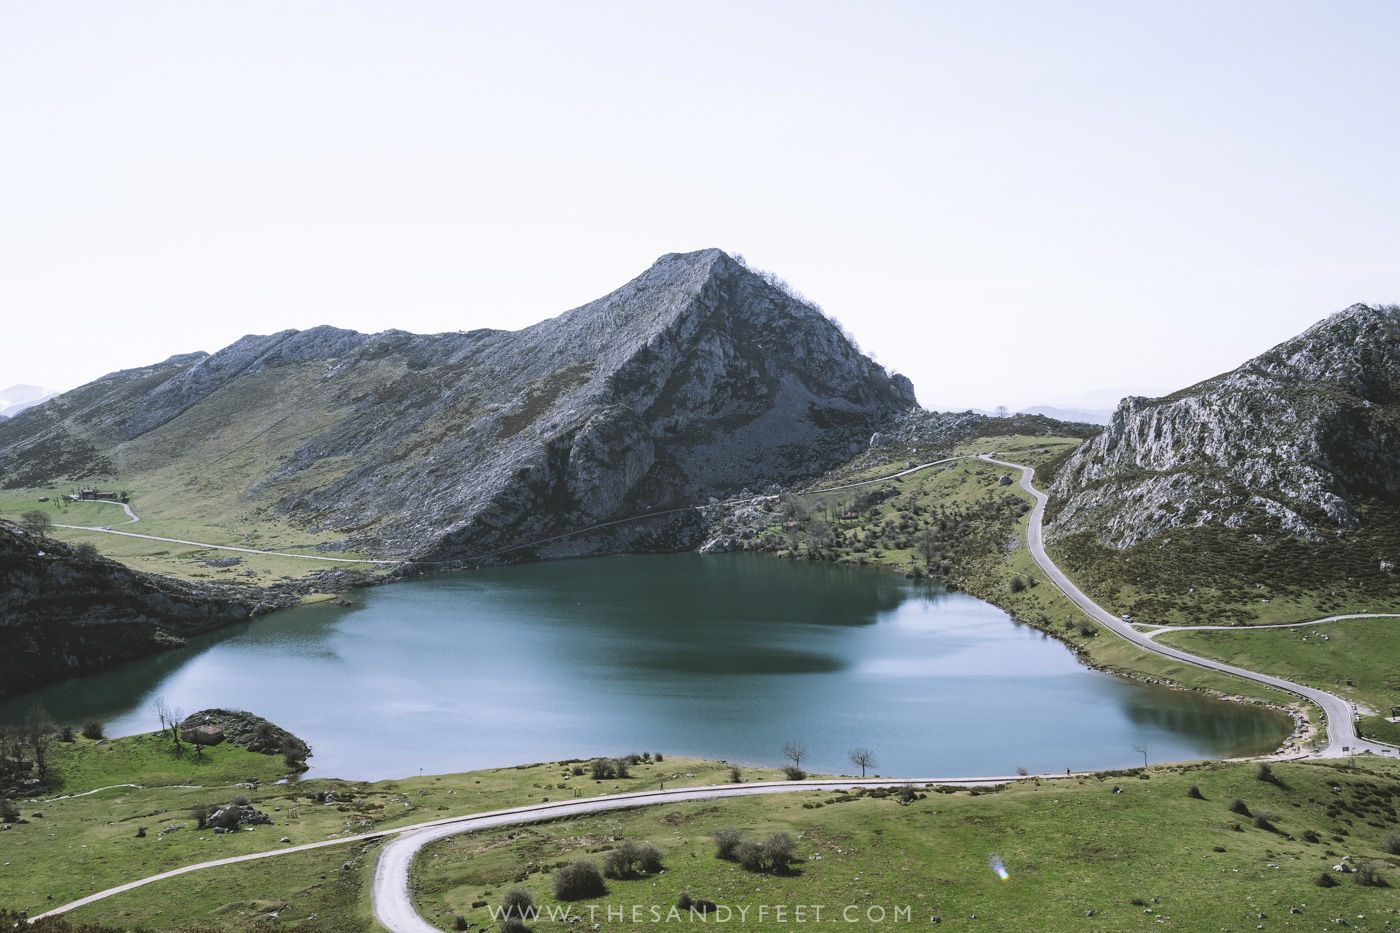 Covadonga Lakes | A Taste Of Northern Spain: 11 Incredible Places To Visit In Asturias | The Best Things To Do In Asturias, Spain